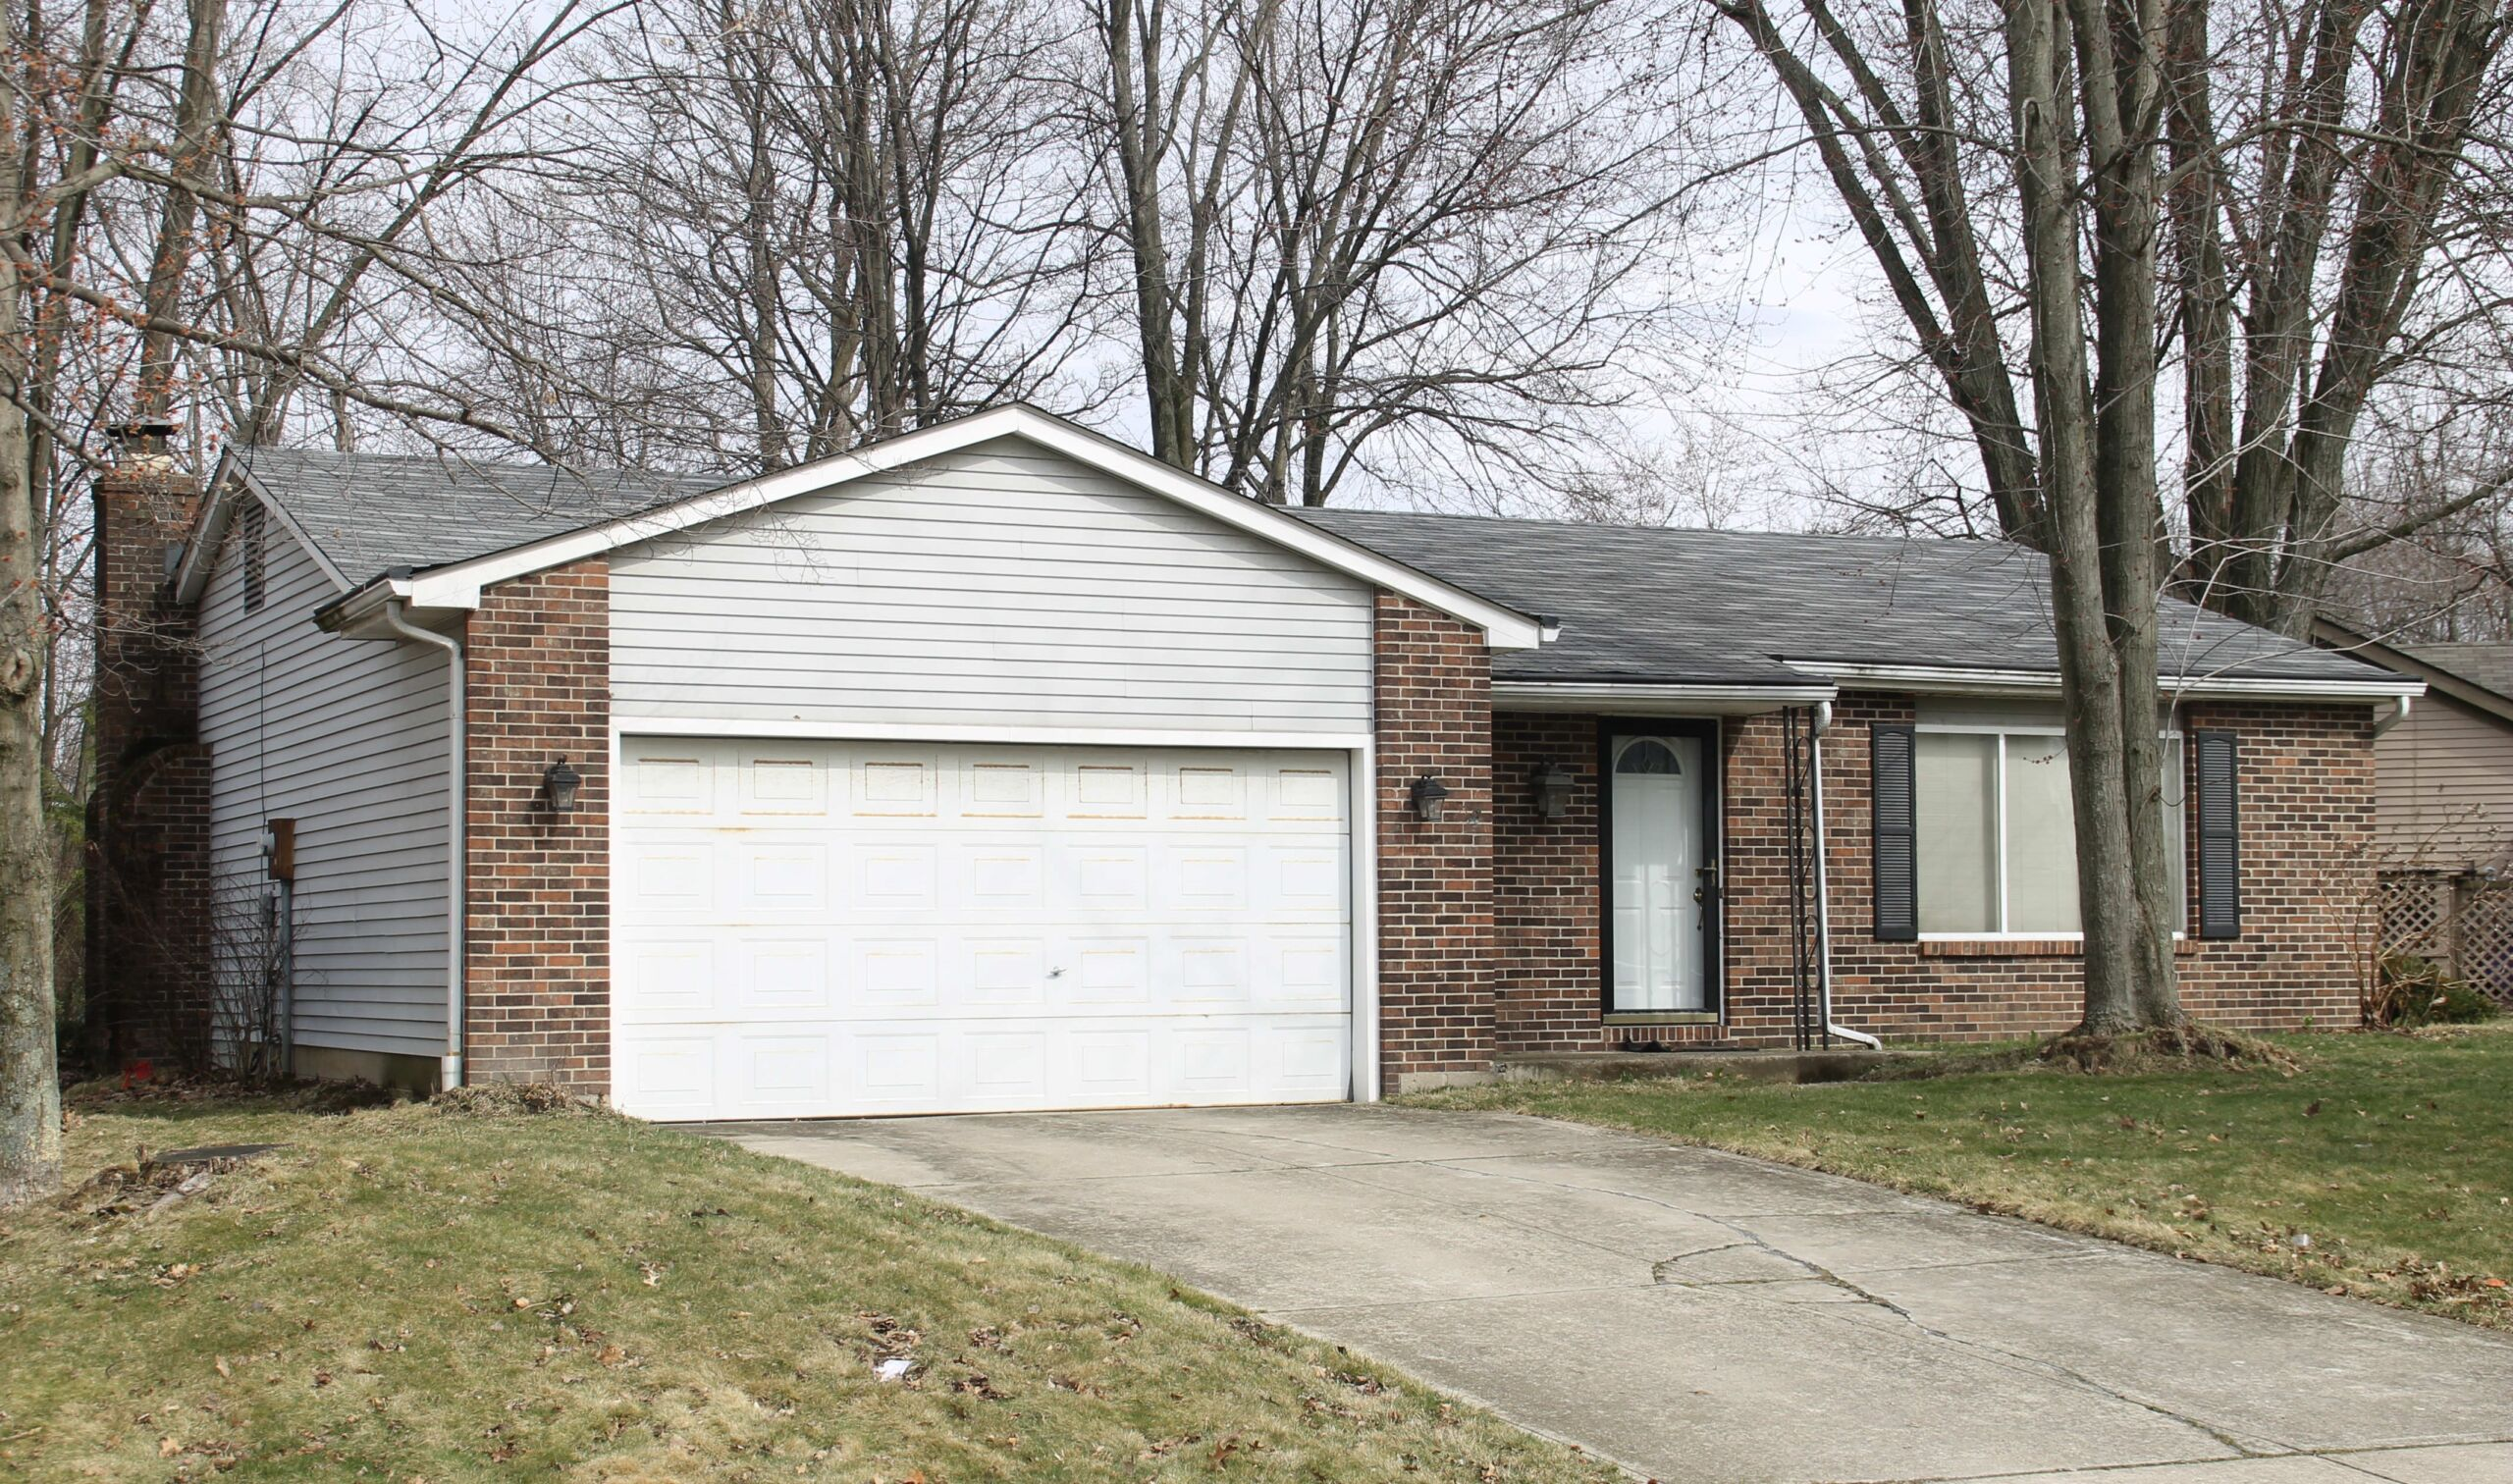 Spacious Westerville Ranch with 3 bedrooms, 1.5 baths, 2-car garage